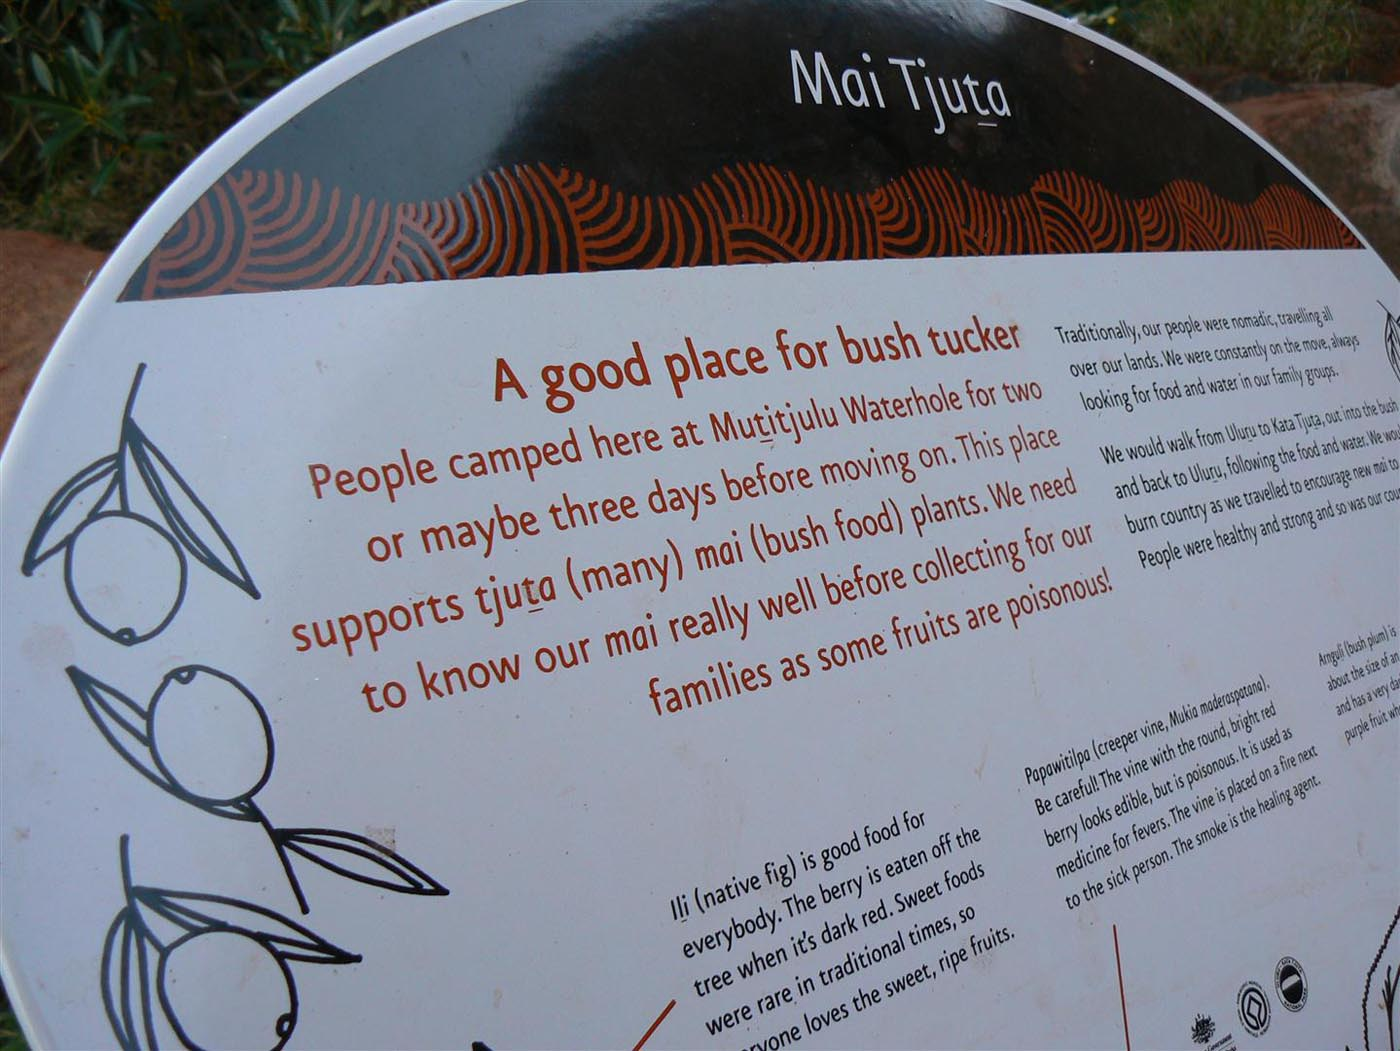 Signboard on bush tucker for tourists with the text 'Mai Tjuta'. - click to view larger image